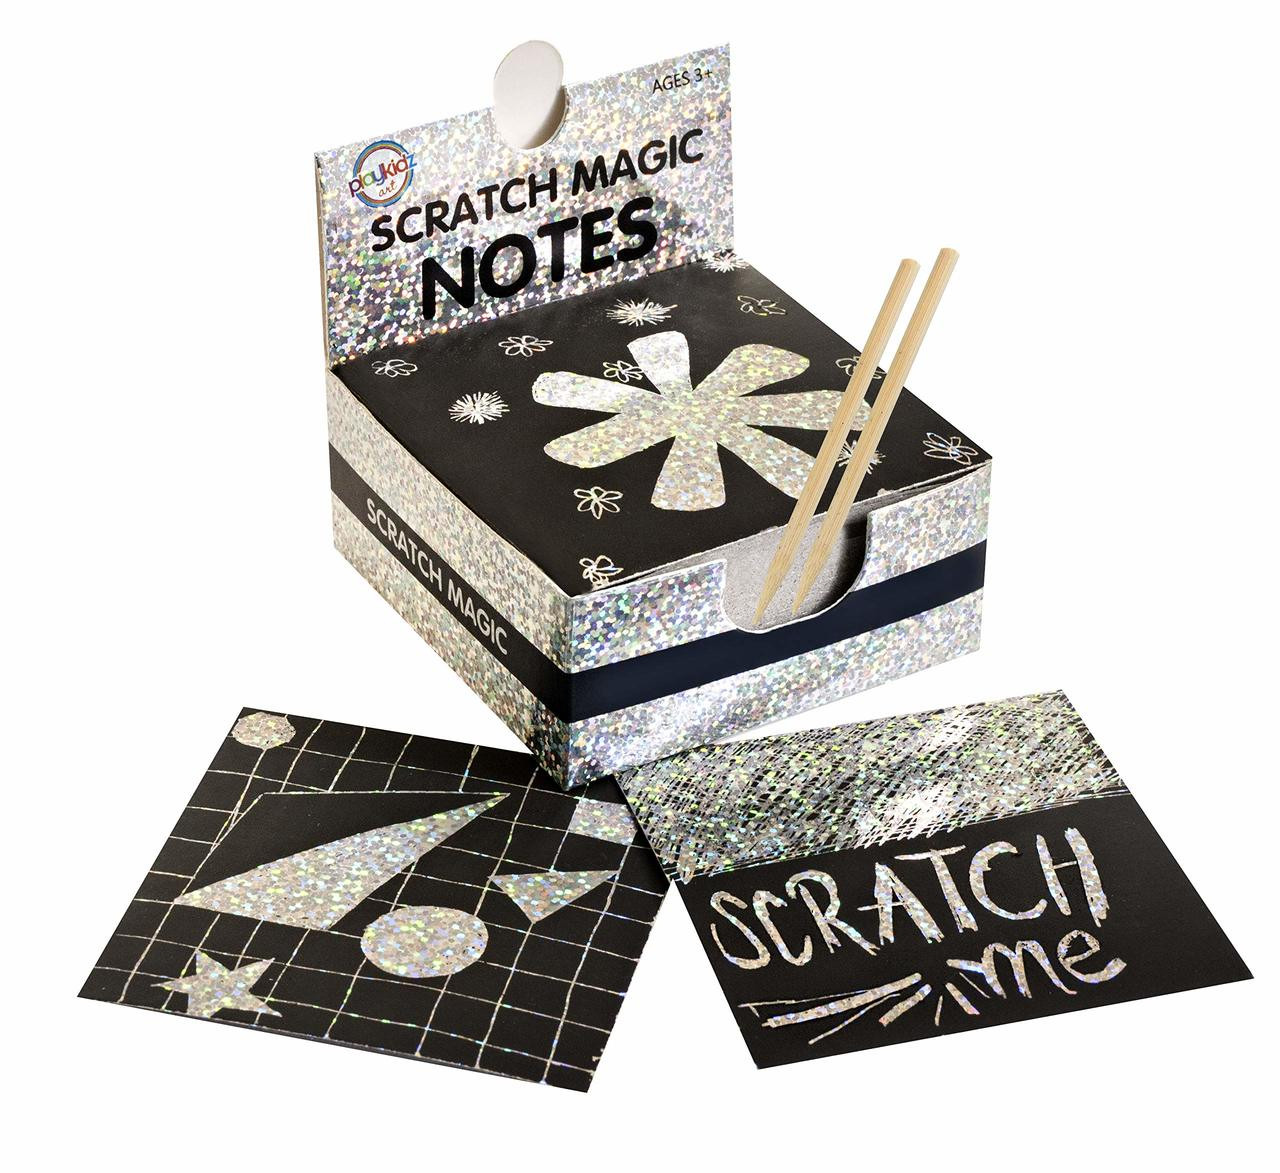 Gold Craftoy Scratch Art Notes Magic Scratch Note Off Paper Pads Cards Sheets for Kids Black Scratch Note Arts Crafts DIY Party Favor Supplies Kit Birthday Game Toy Gifts Box for Girls Boys